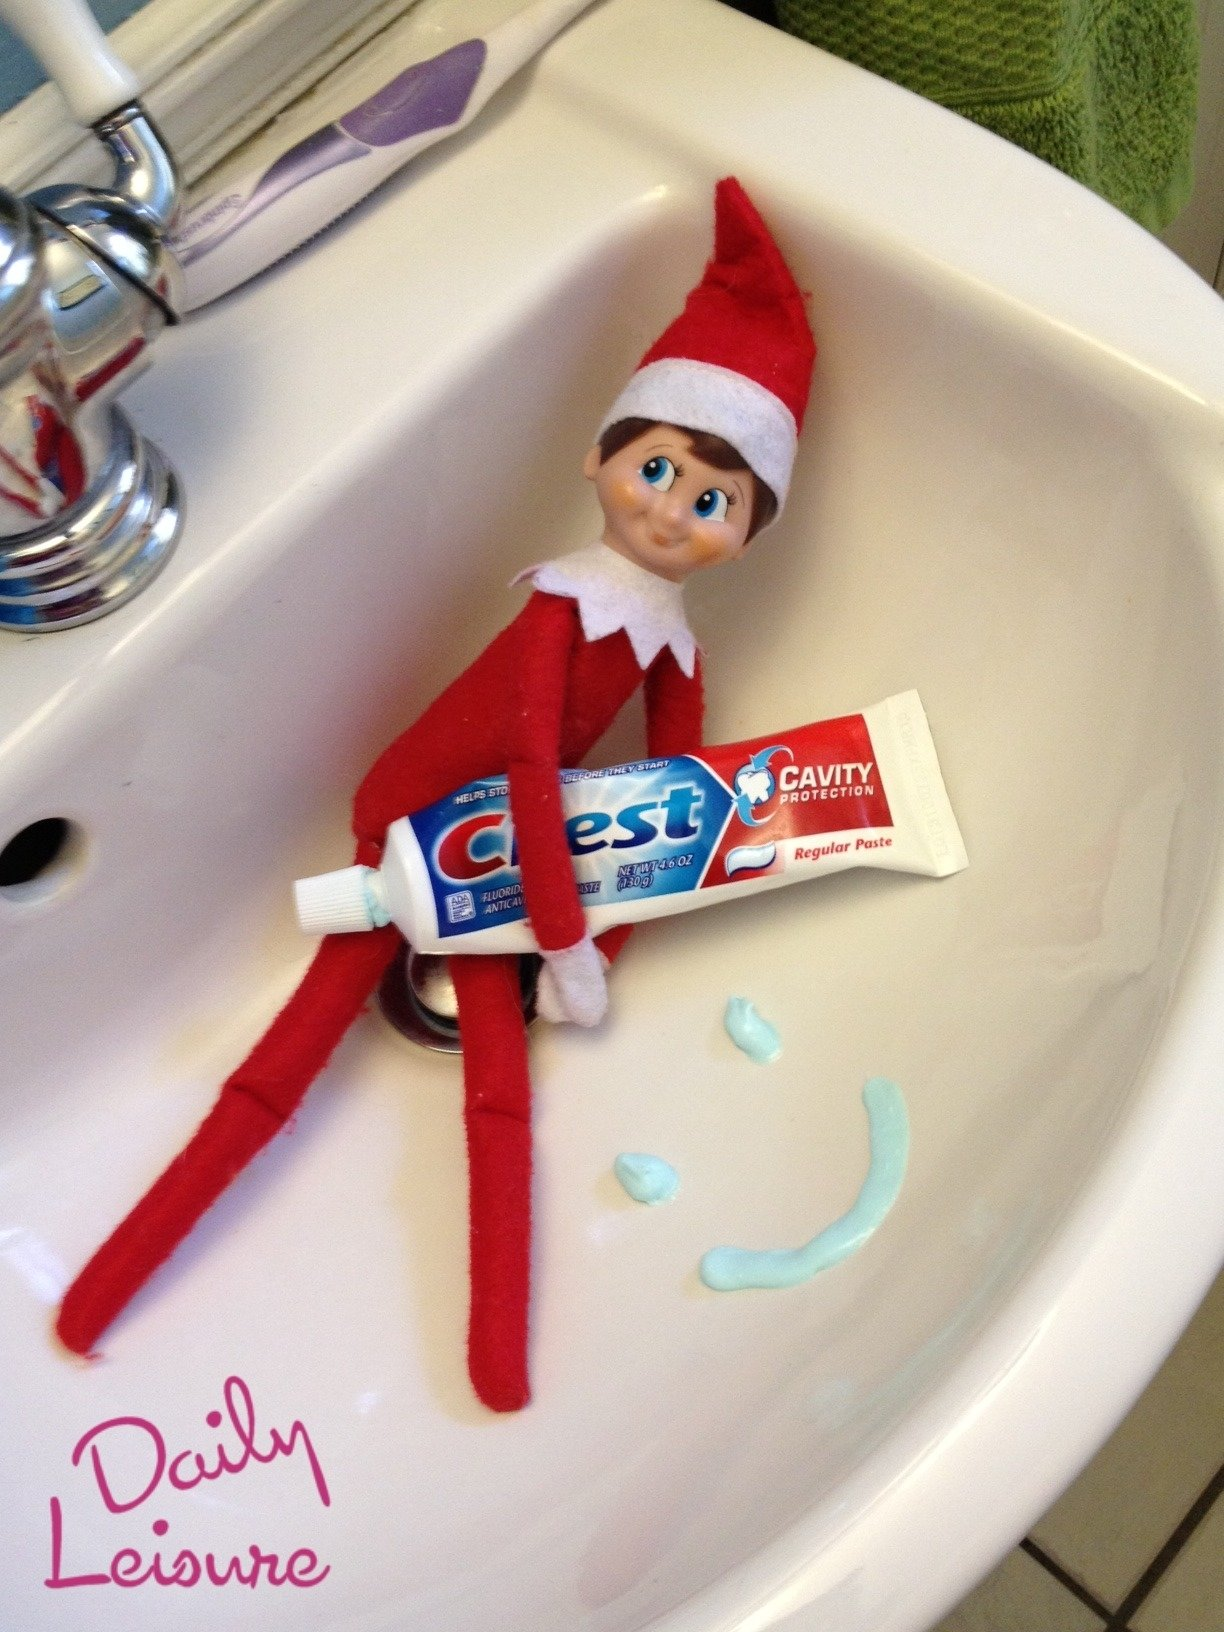 10 Most Recommended Elf On The Shelf Ideas elf on the shelf calendar 2014 a grande life 2020